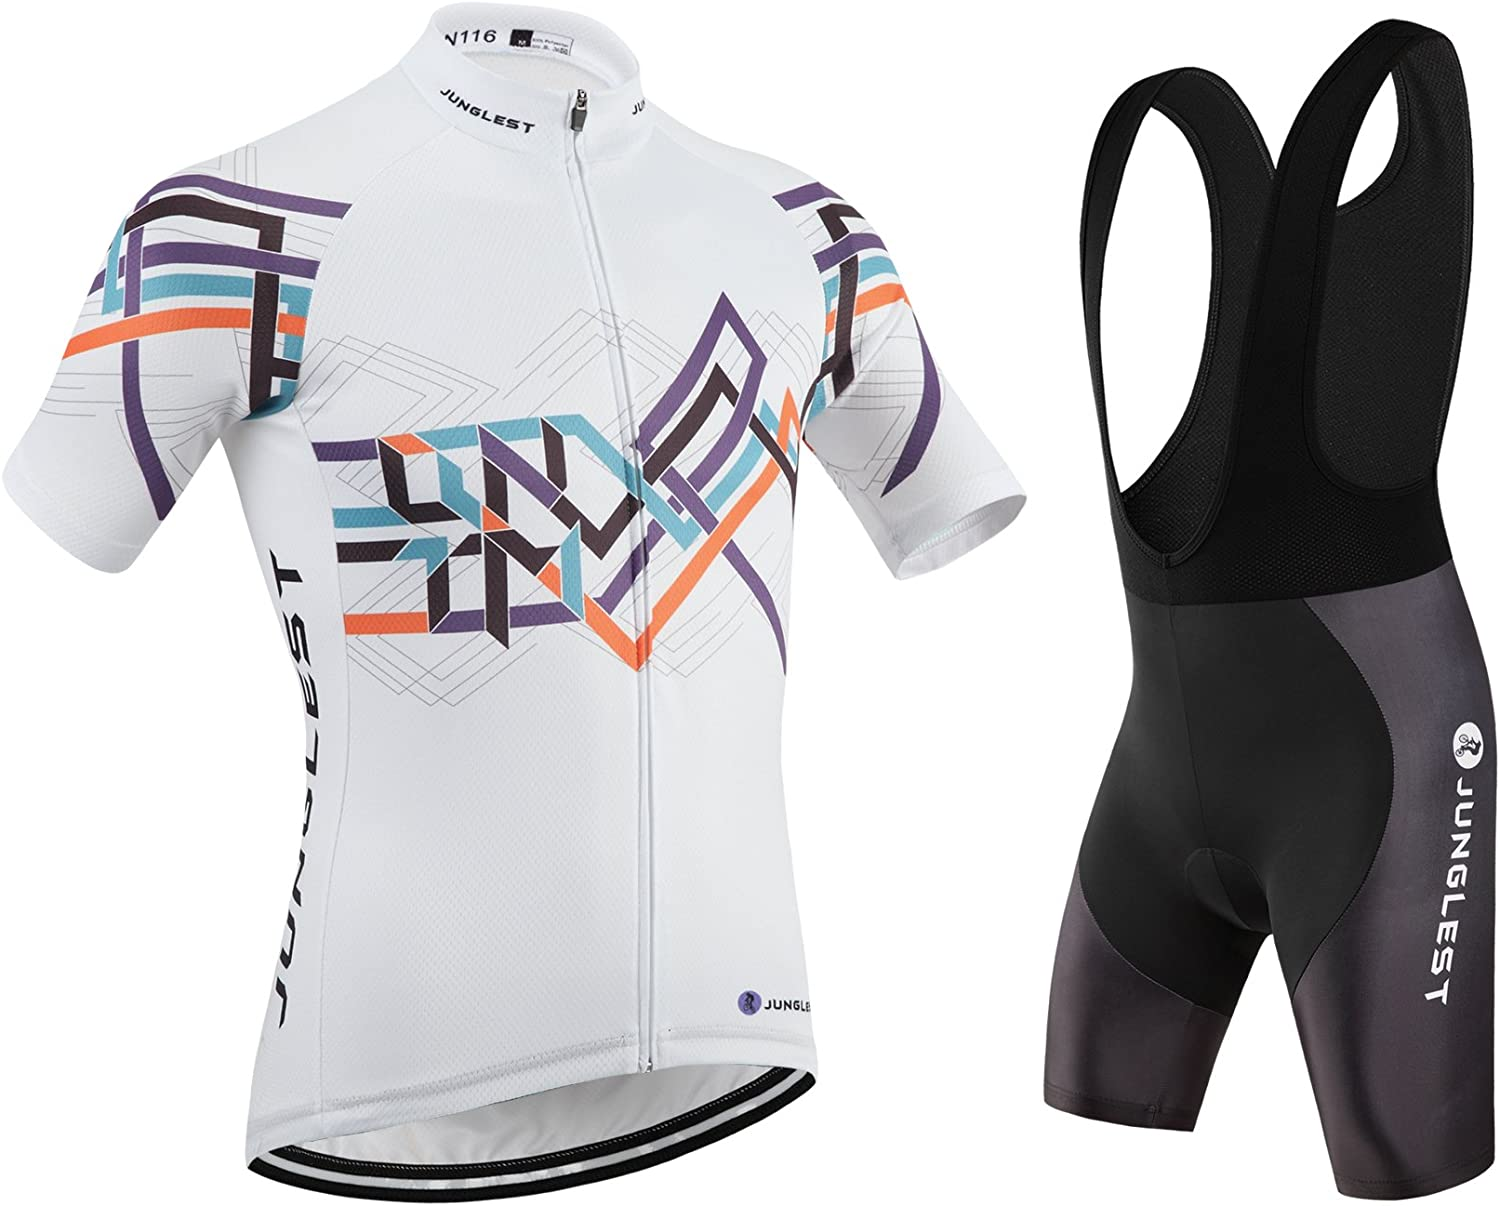 Cycling jersey Set, Maillot de Cyclisme Wen Homme Short sleeve Manches Courtes(S5XL,option bib Cuissard,3D pad Coussin) N116